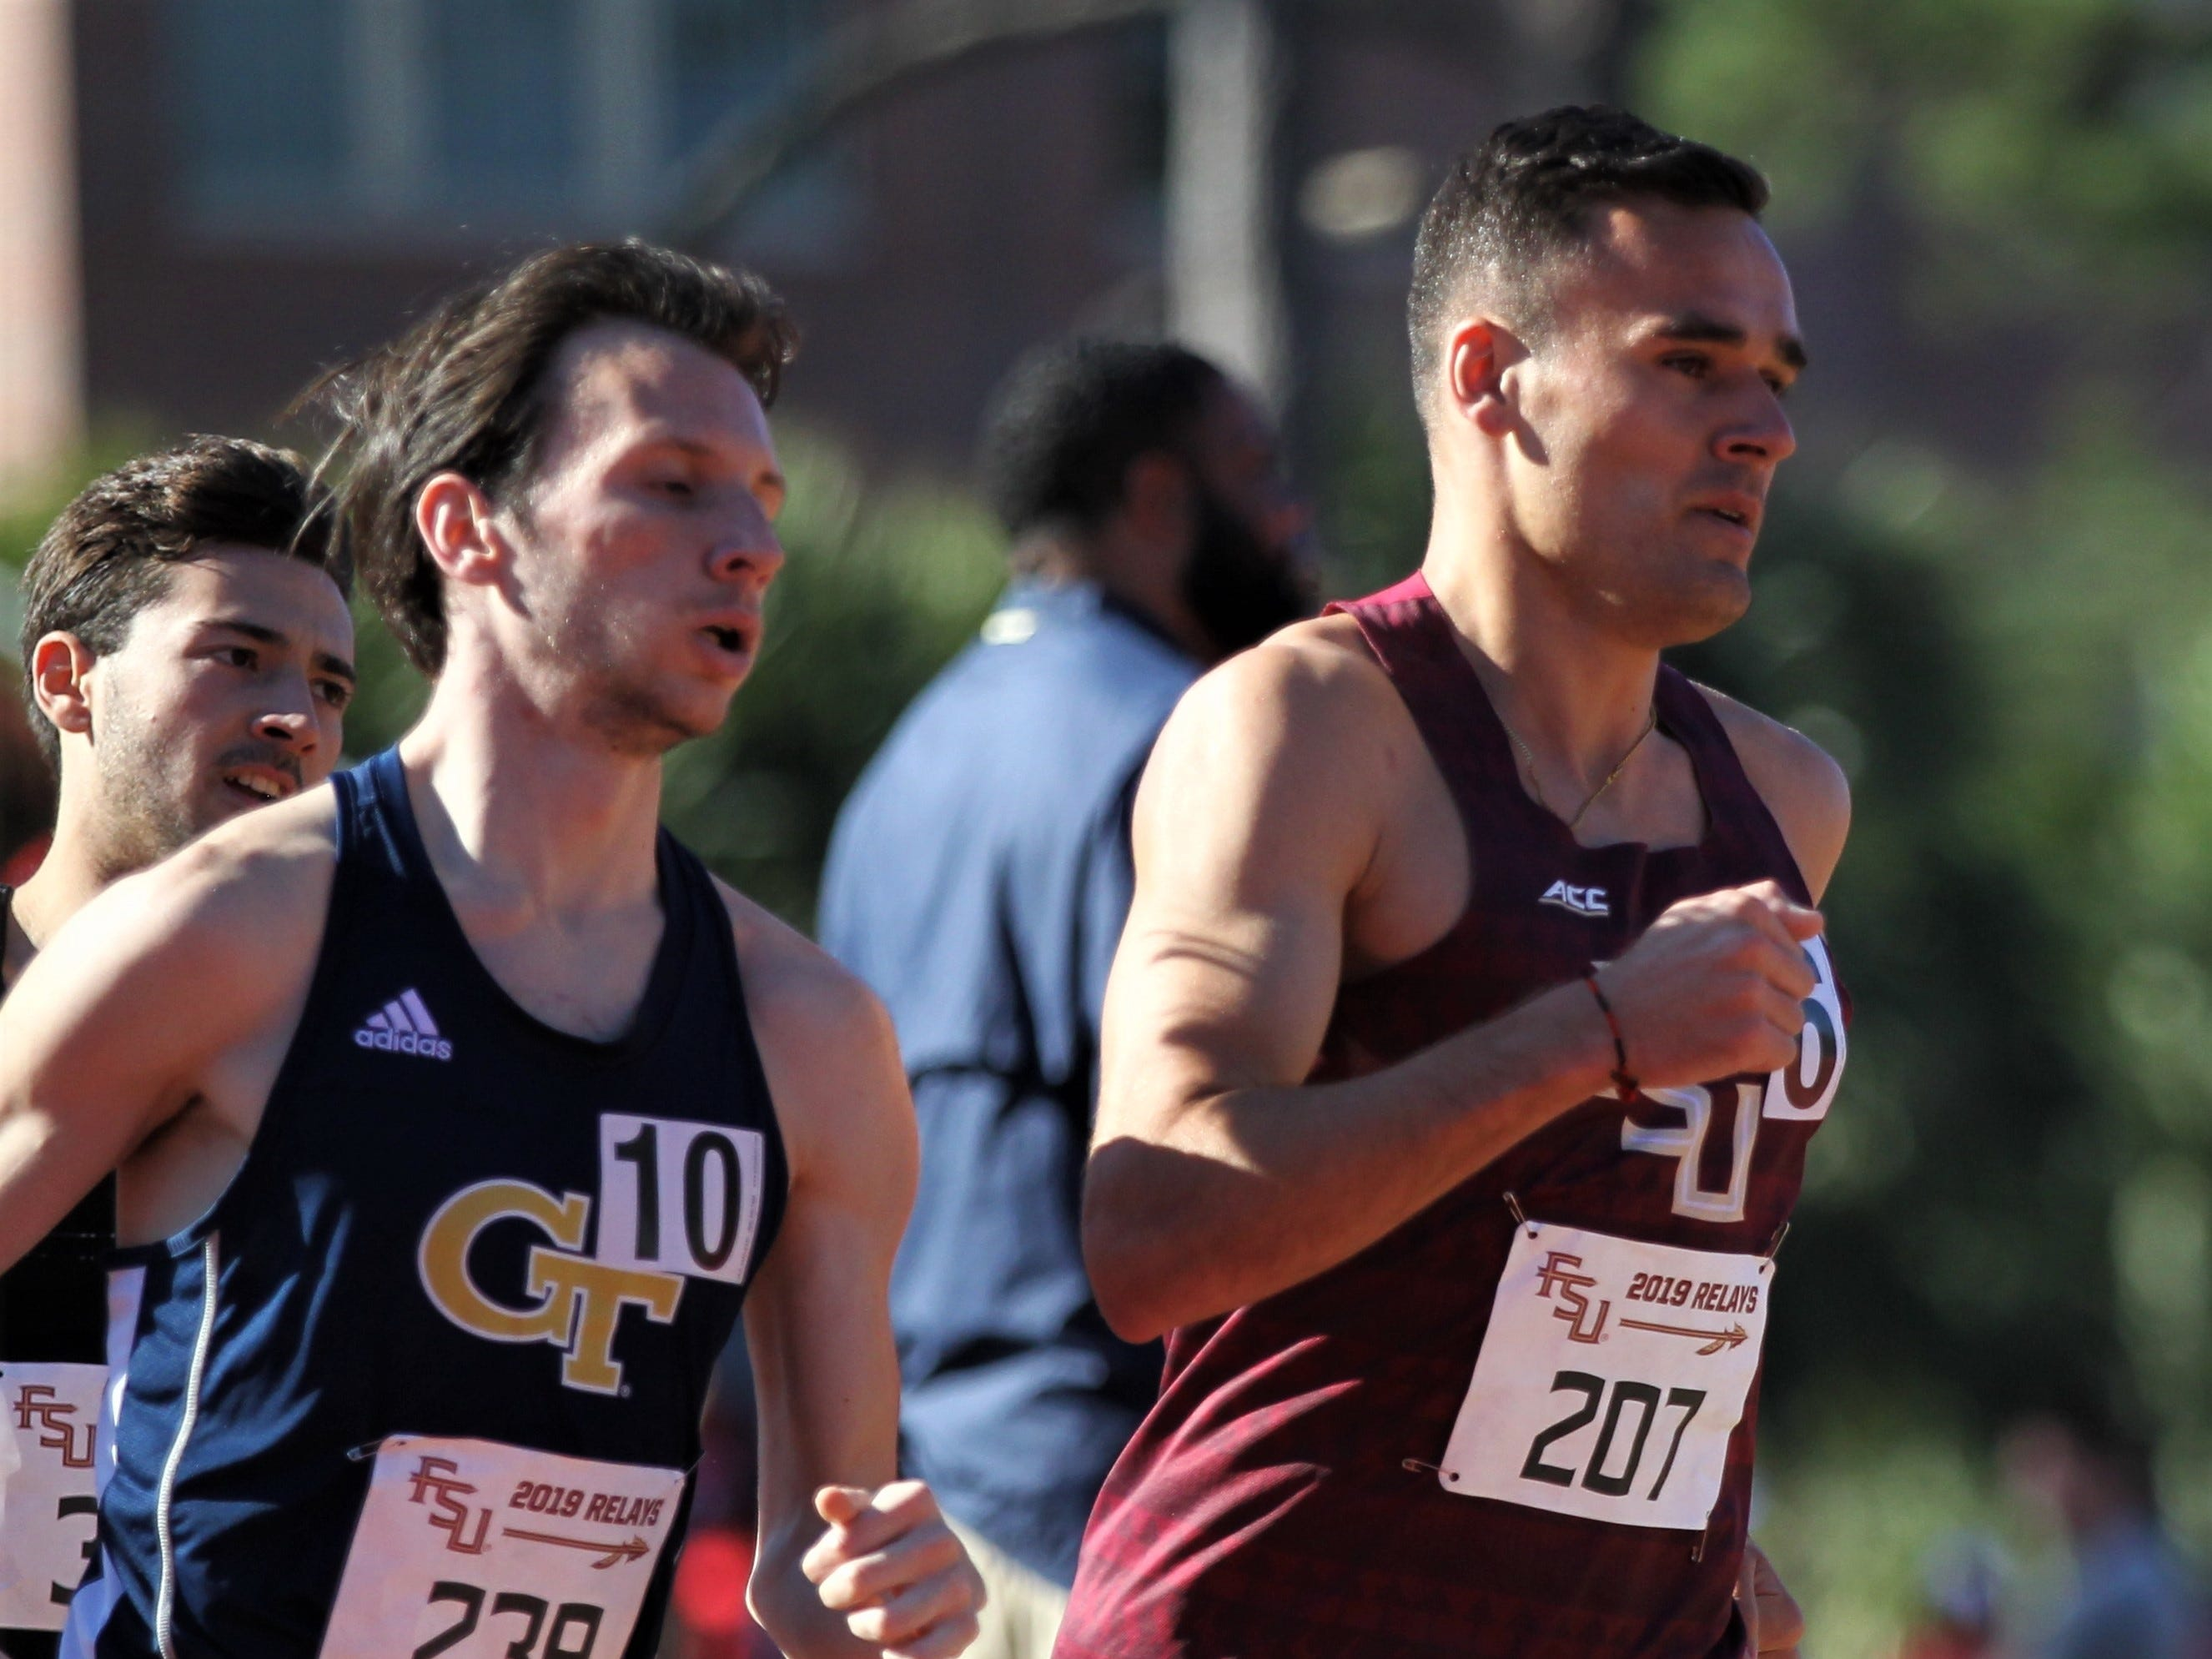 Florida State senior Istvan Szogi races the 1500-meter run during Friday's college portion of the FSU Relays at Mike Long Track on March 22, 2019.